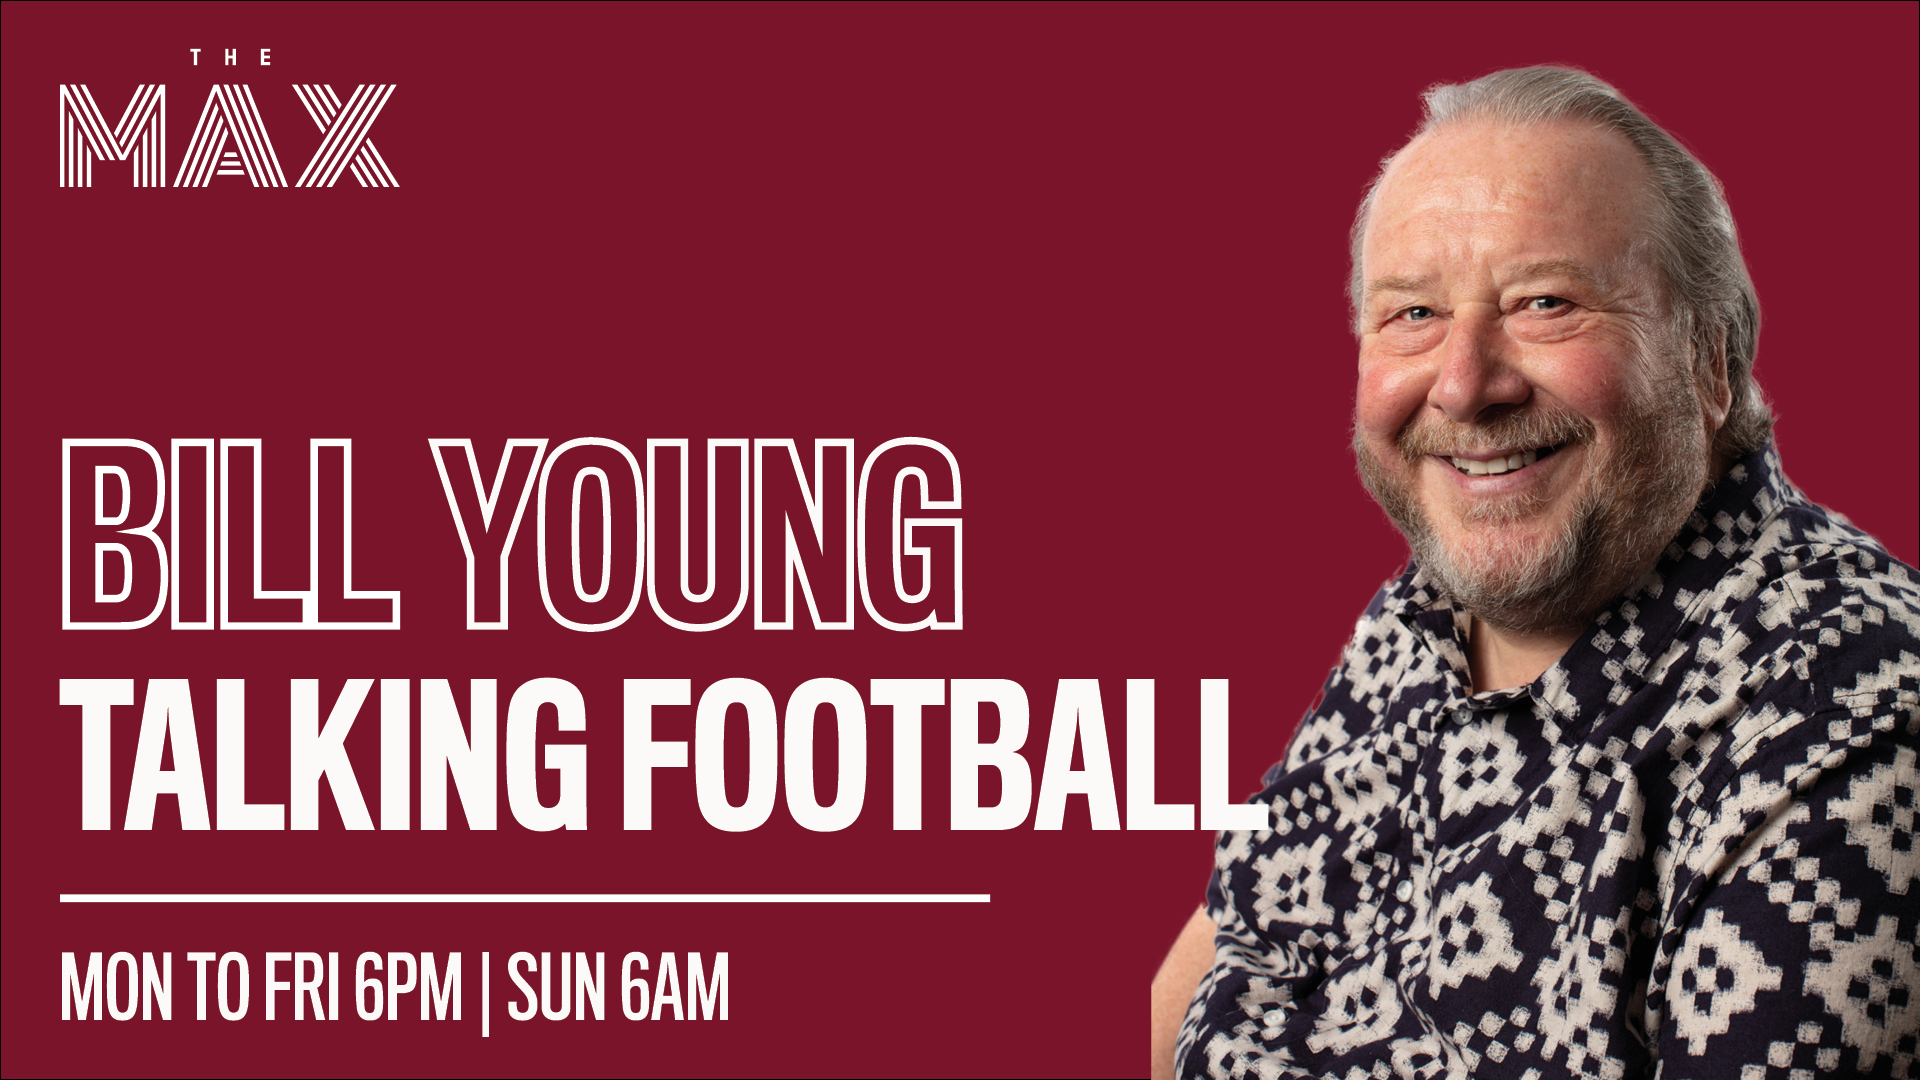 Talking Football with Bill Young Friday 12th March